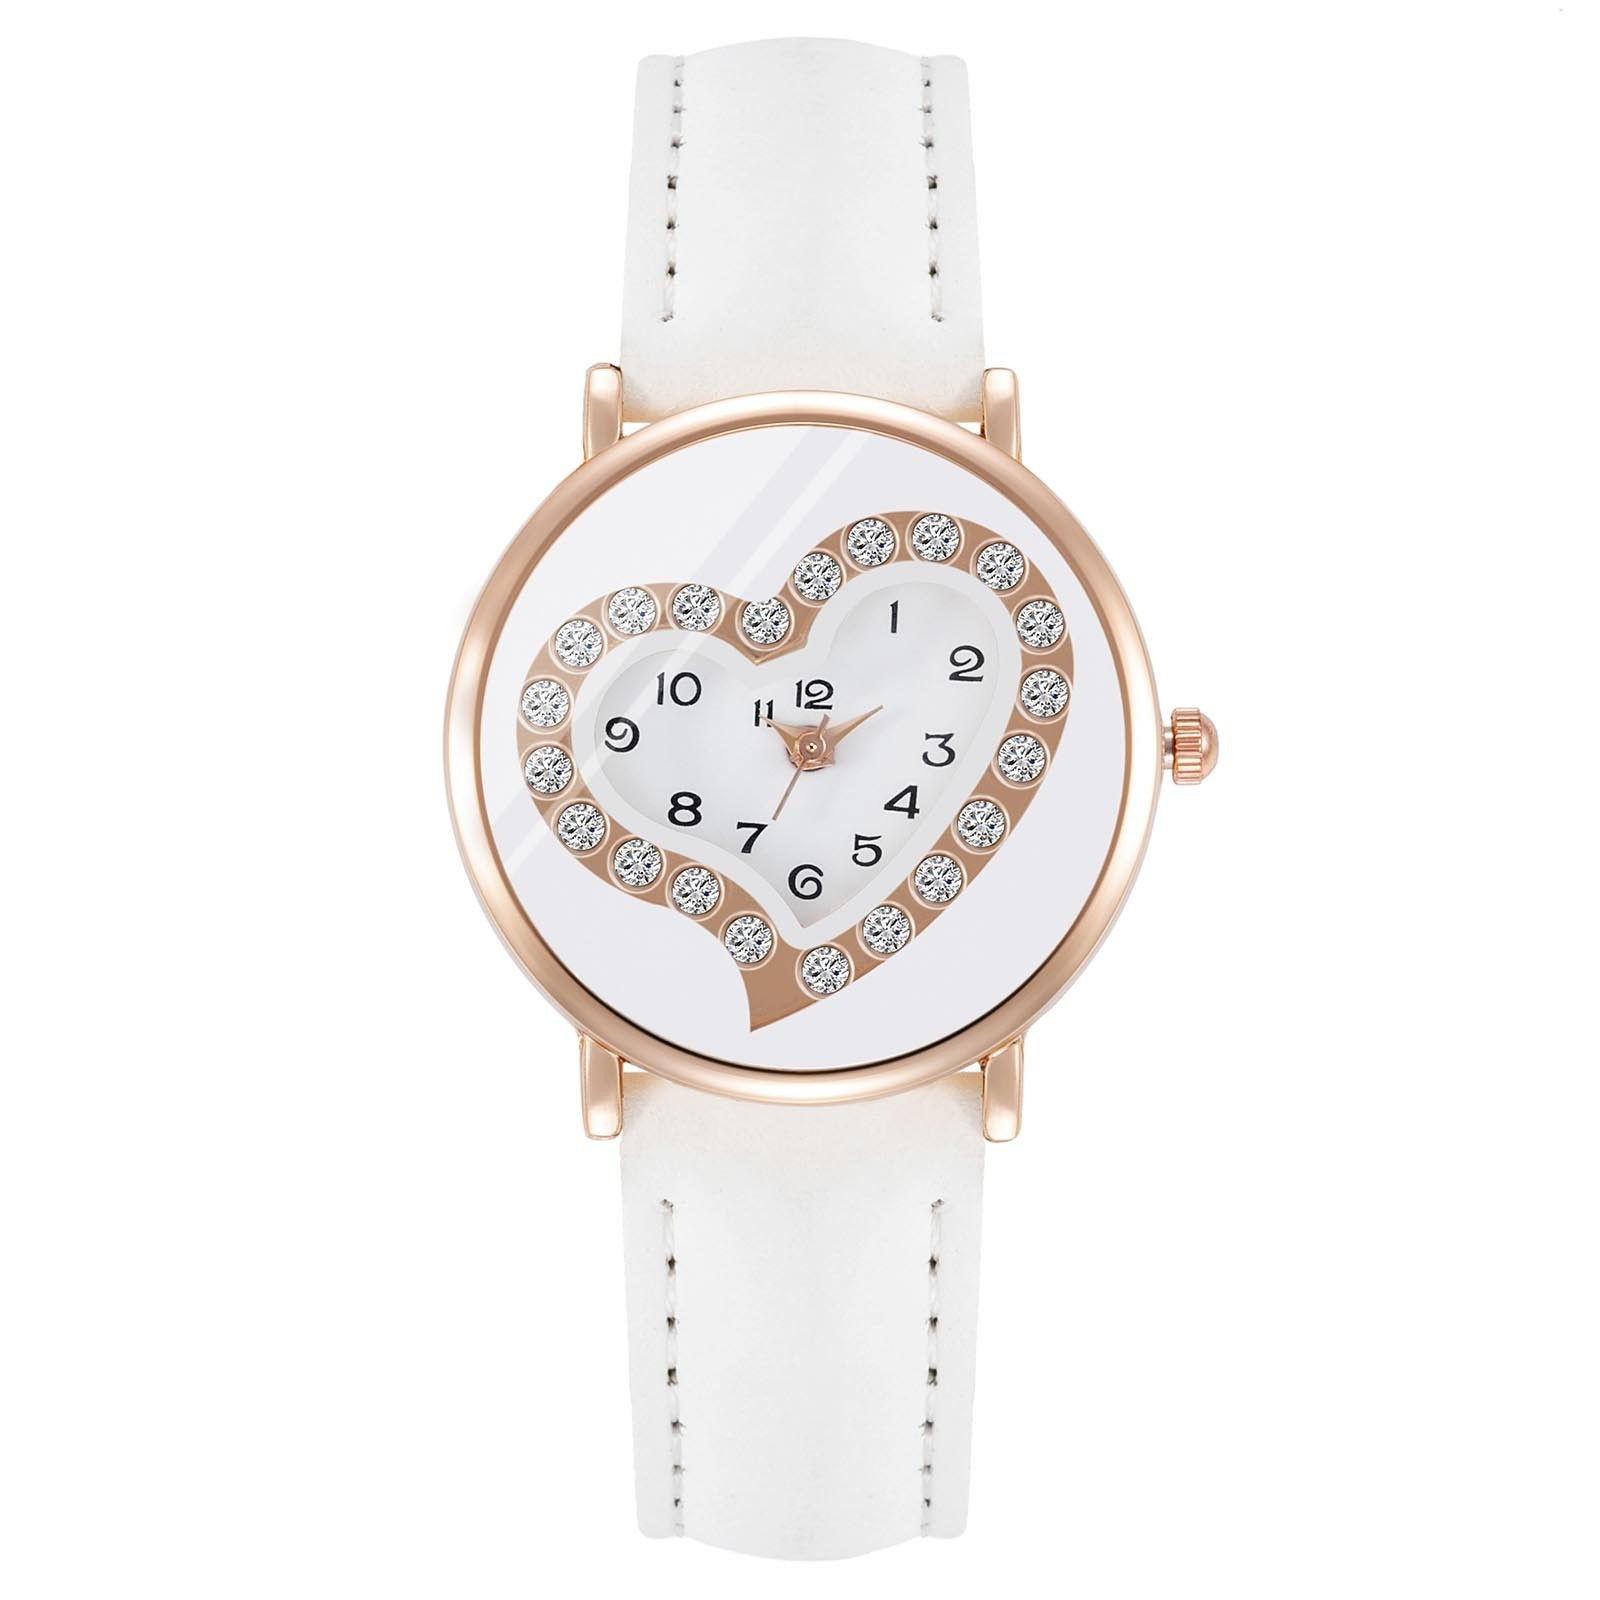 Women Lover Dial White Leather Watches Trend Style Korean Wave Classic Women Watch Top Brand Waterproof Watch часы женские rosenthal classic watch collection часы наручные asymetria rosegold white metal